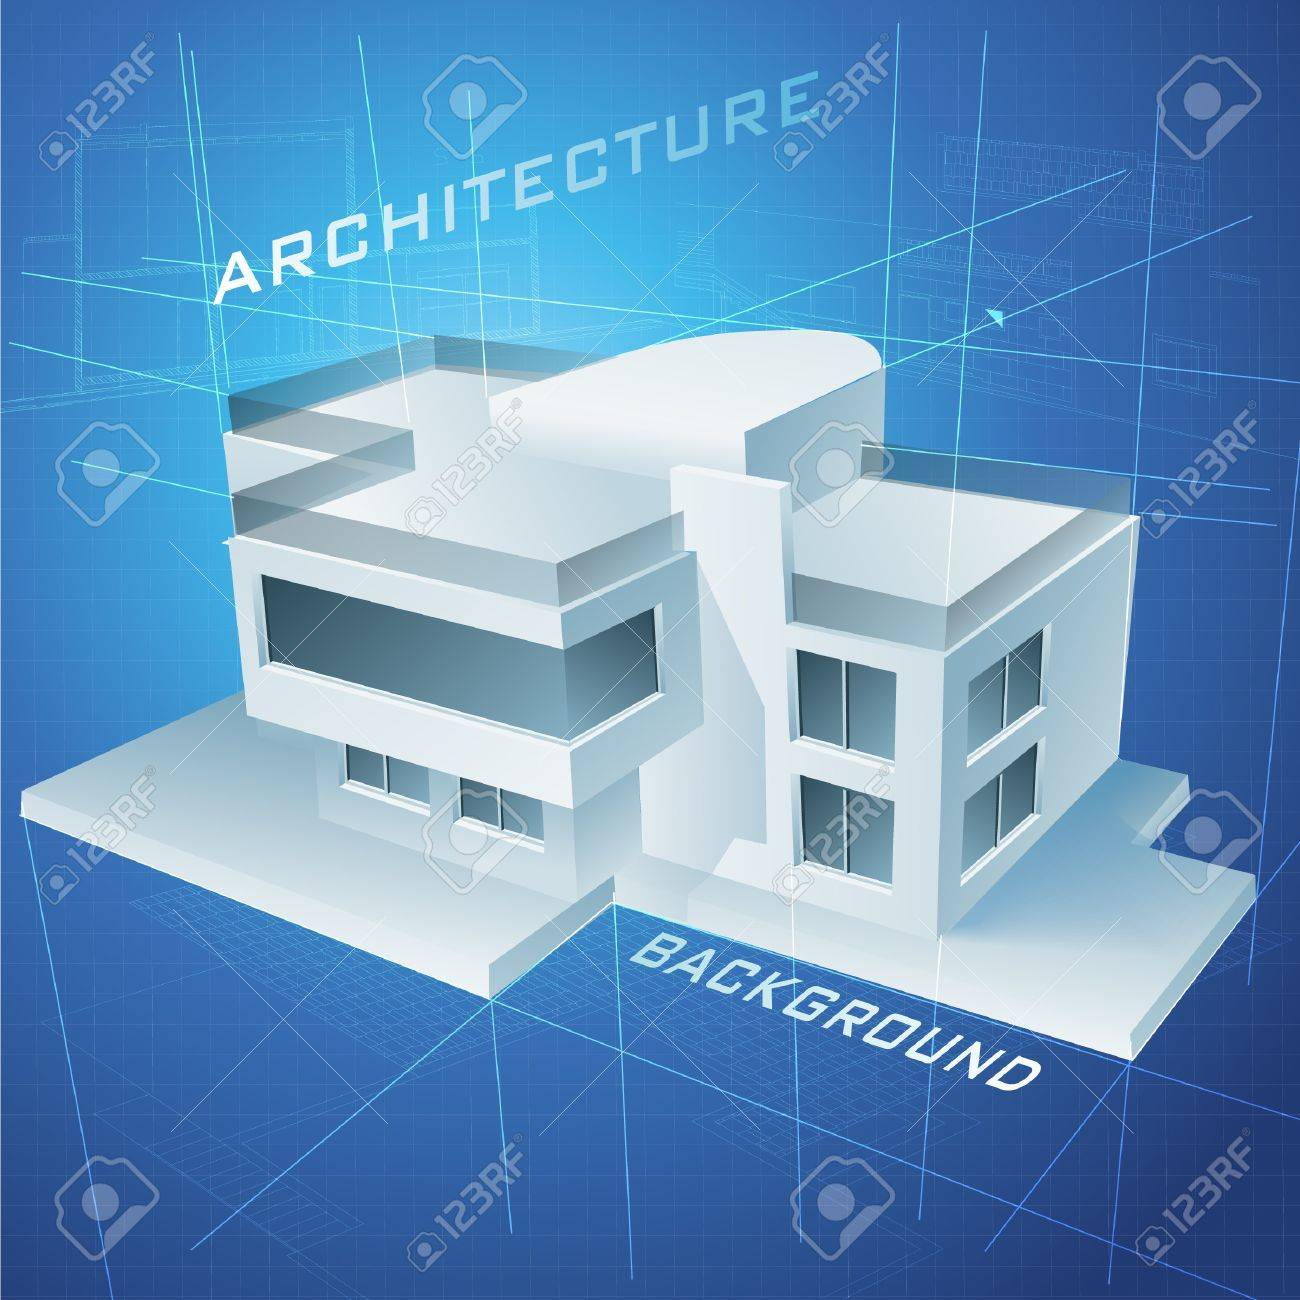 Architectural Background With A 3D Building Model Clip-art Royalty ...